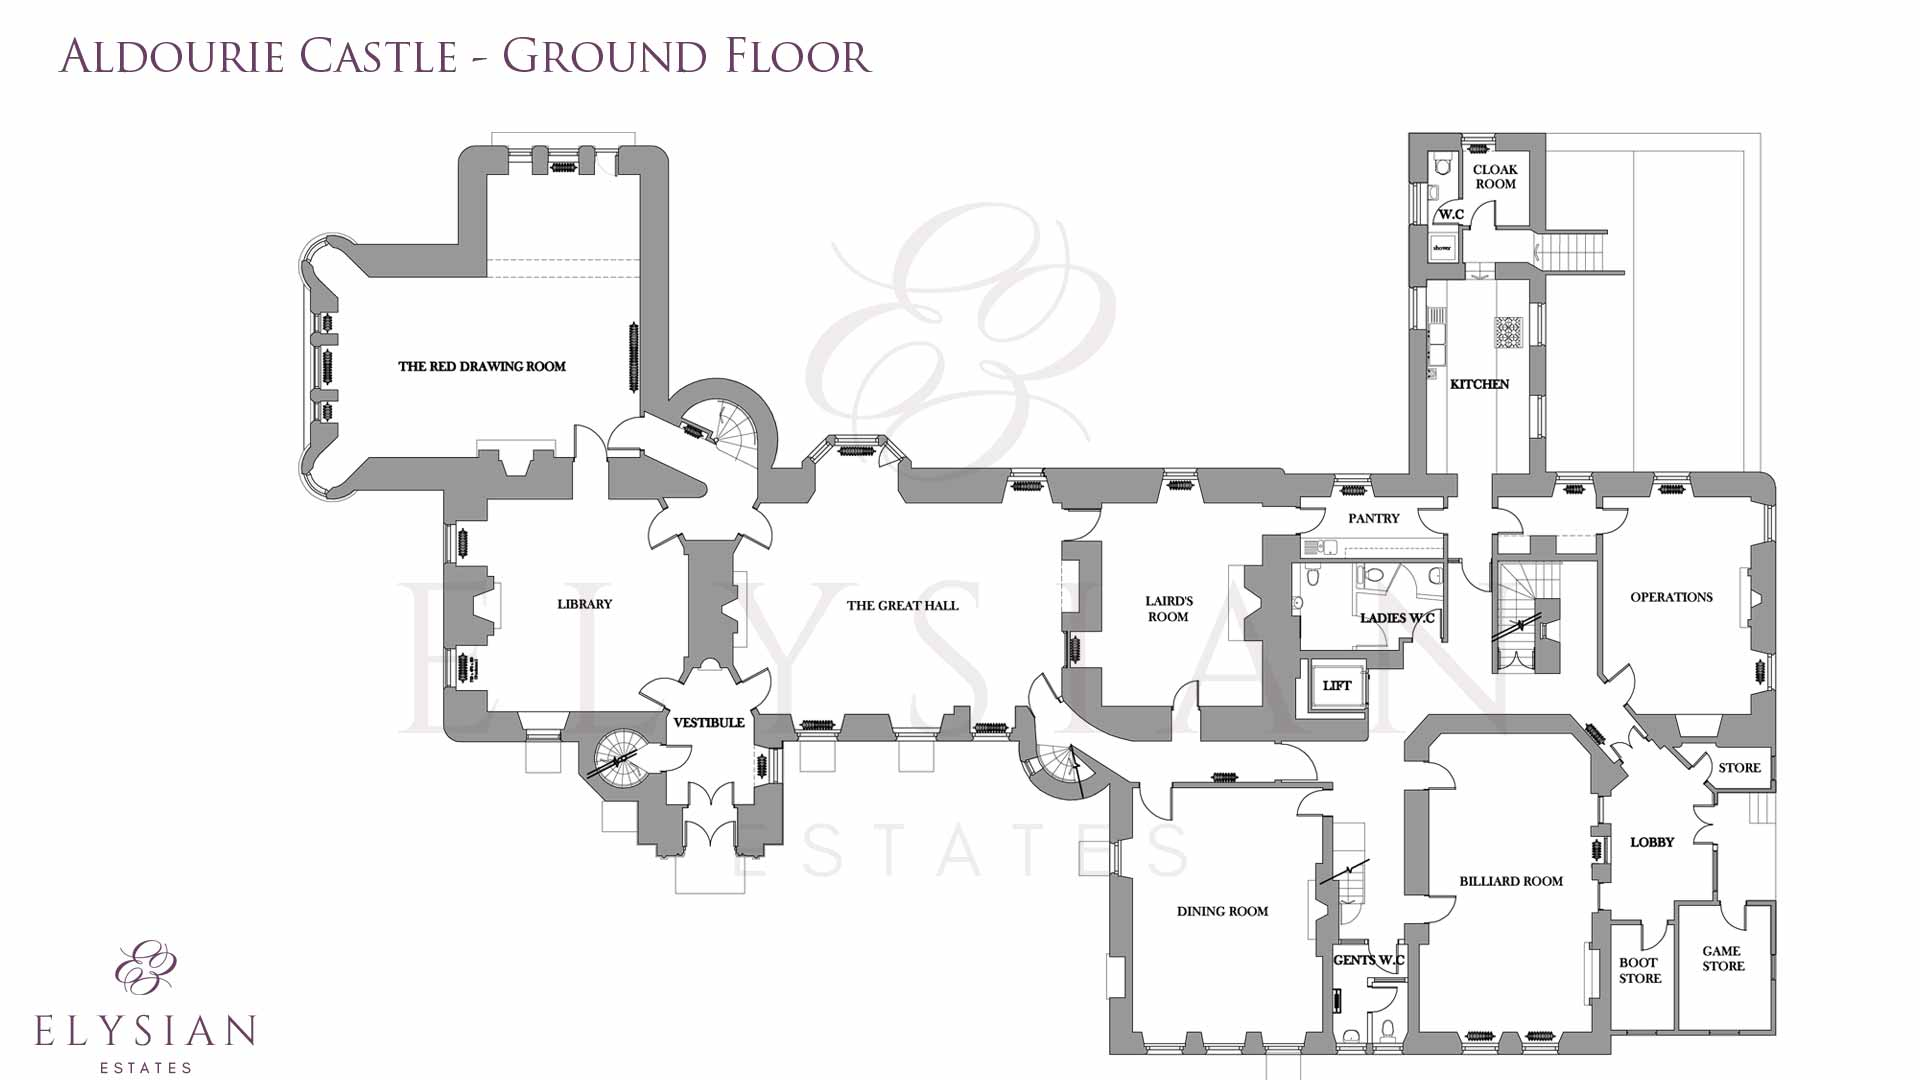 aldourie castle ground floor plan aldourie castle floor plan